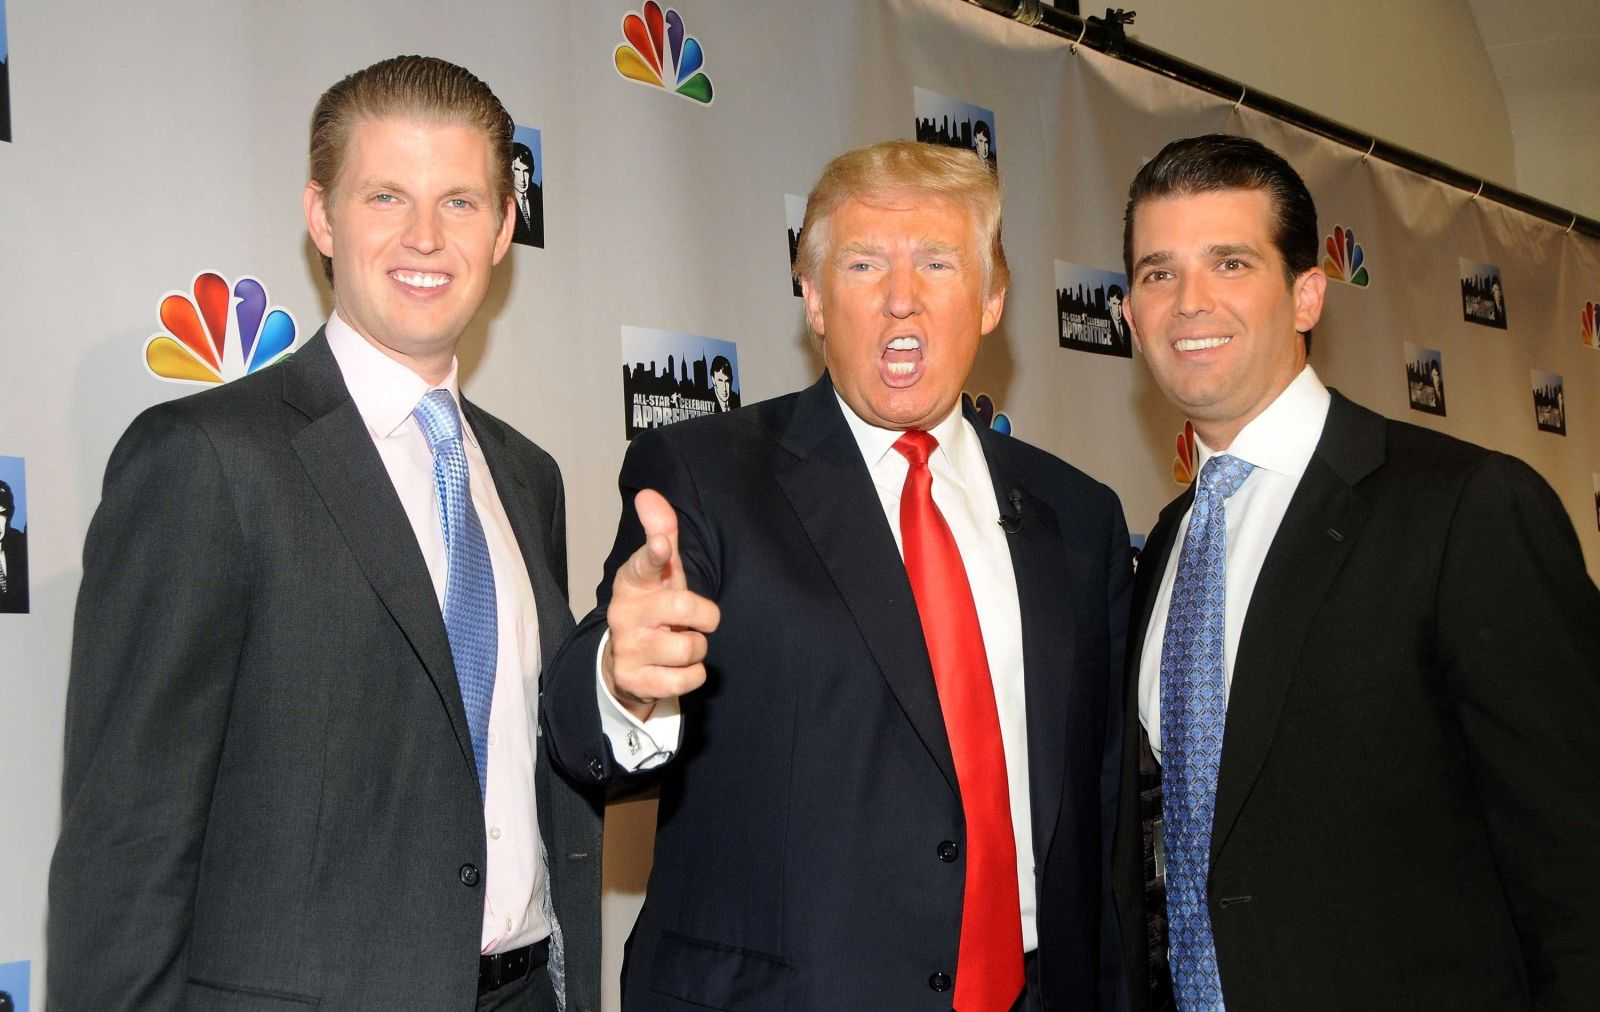 Trump sons Eric, Donald Jr. to attend 'closed' Dubai event